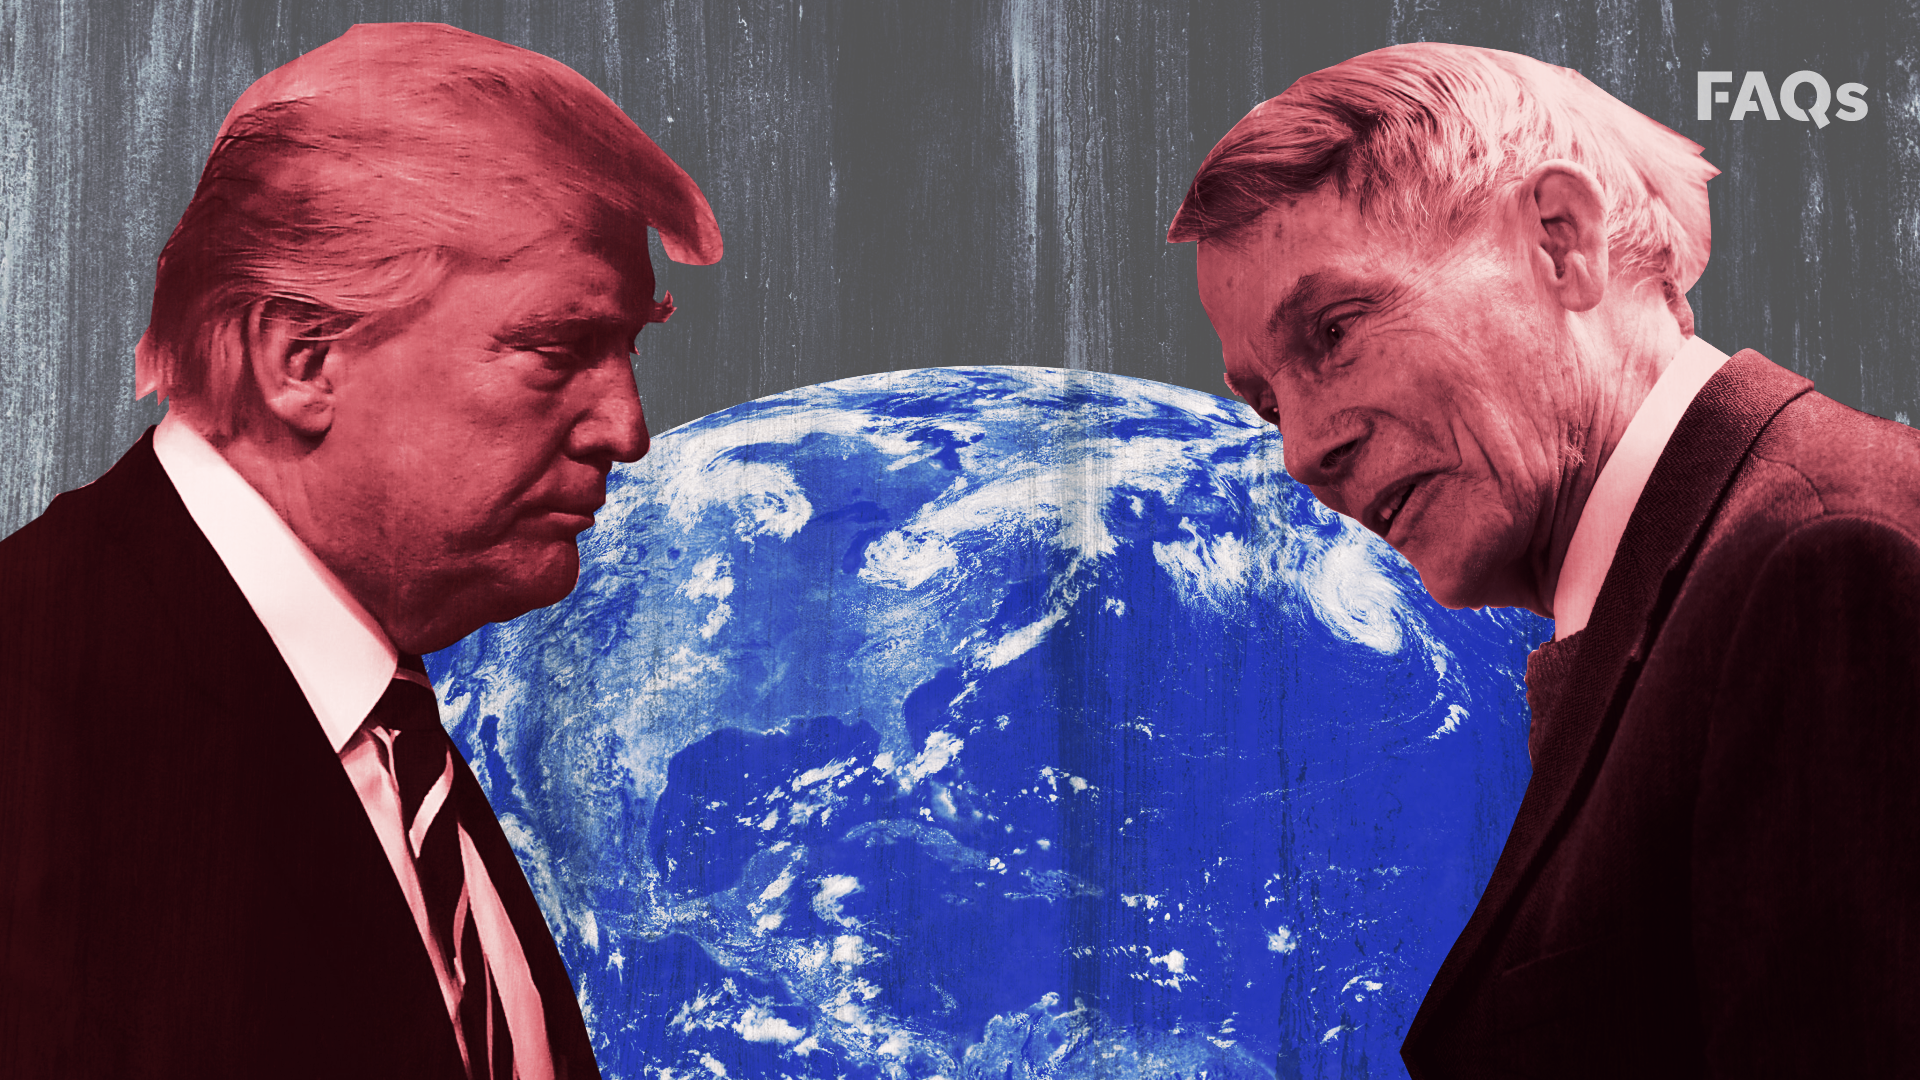 Climate change: Why Trump's panel on climate science is controversial